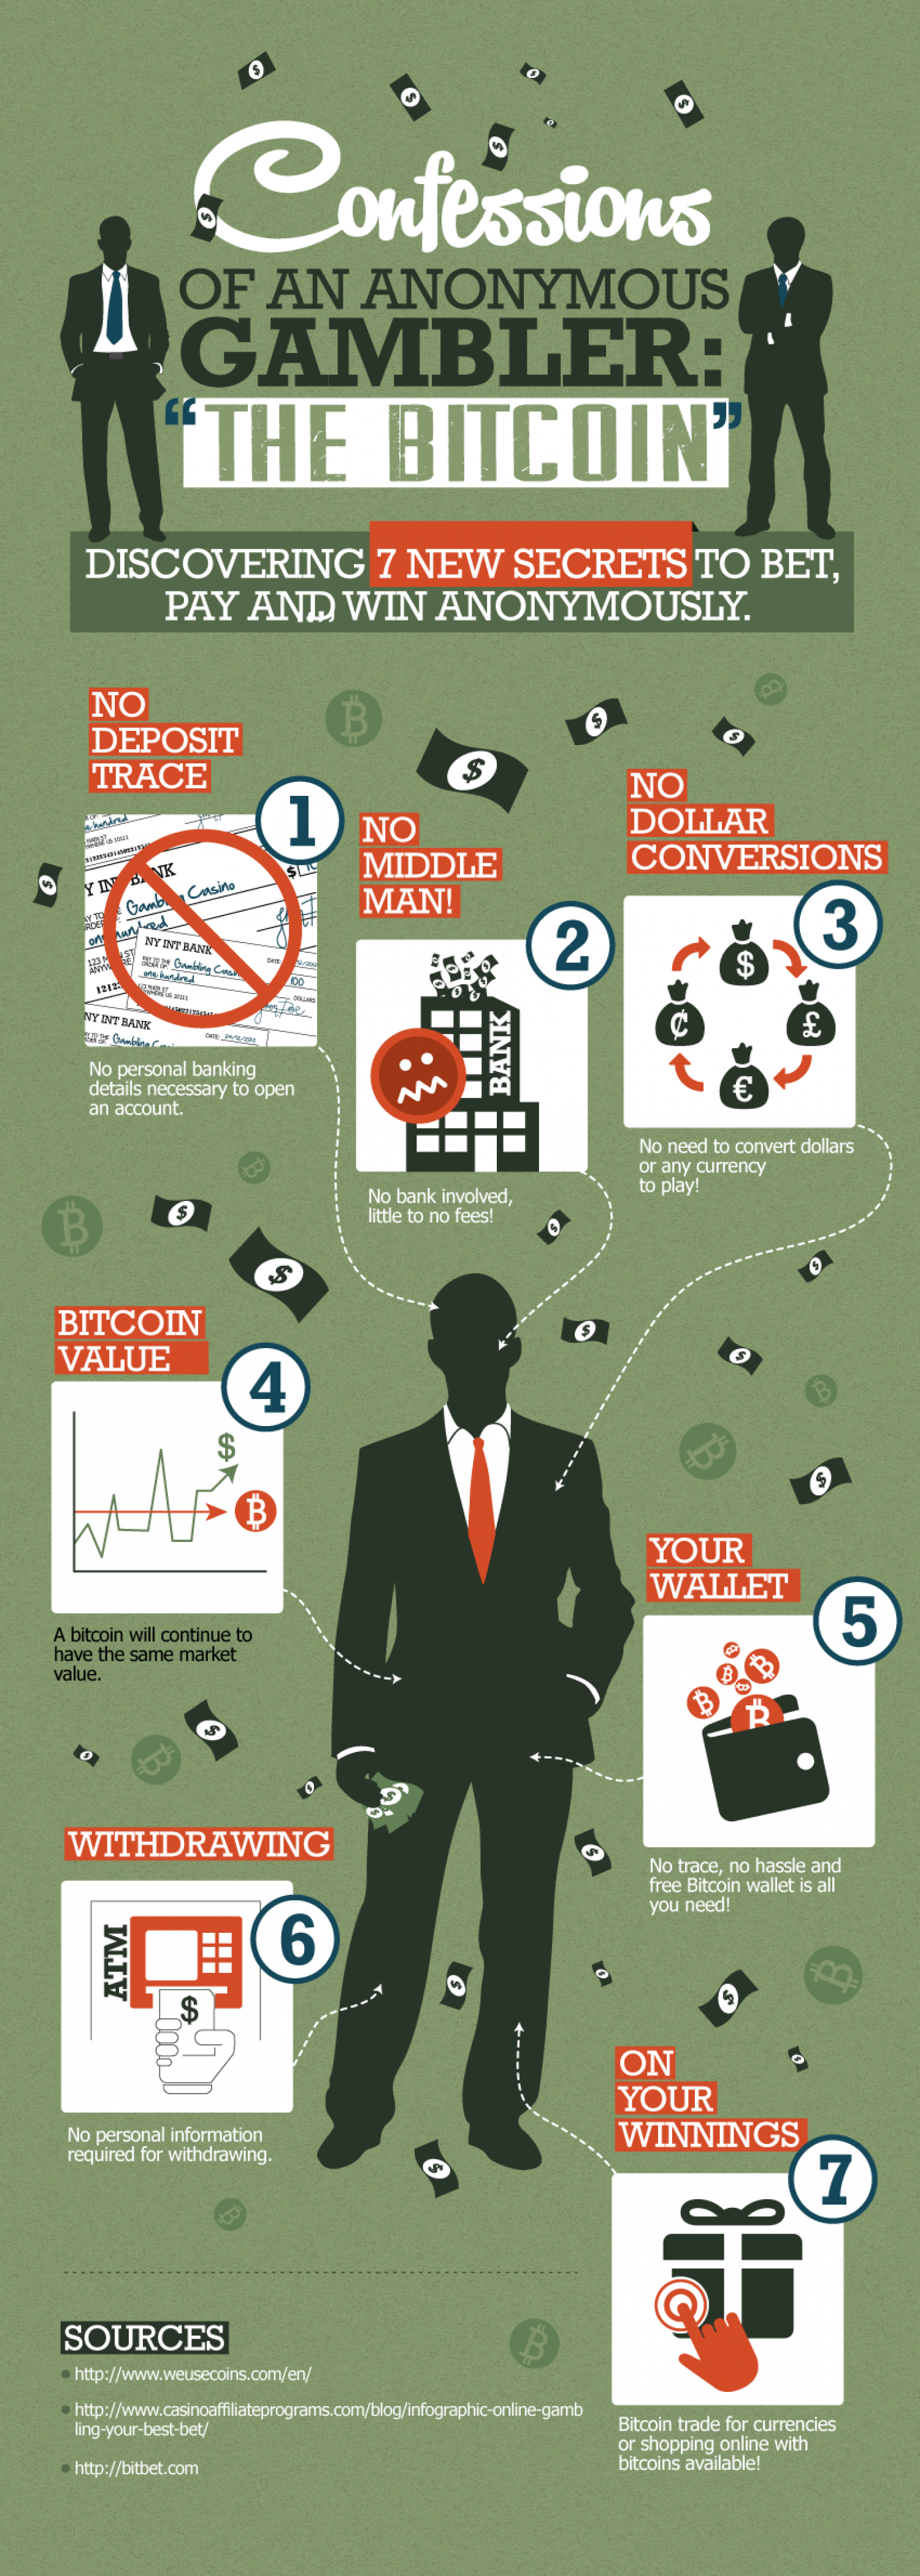 "Confessions Of An Anonymous Gambler: ""The Bitcoin"" Infographic"